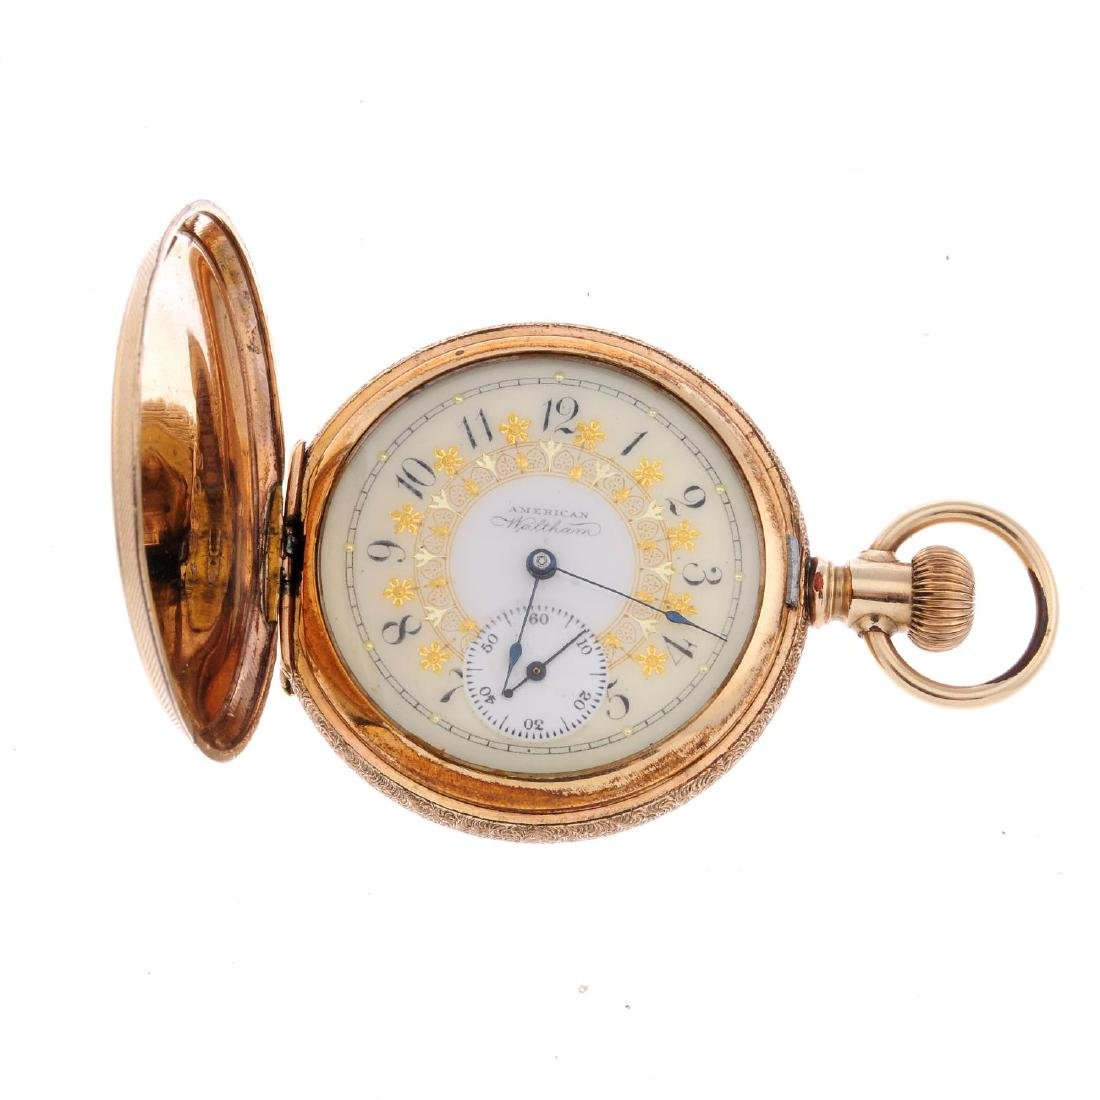 A full hunter pocket watch by Waltham. Gold plated case